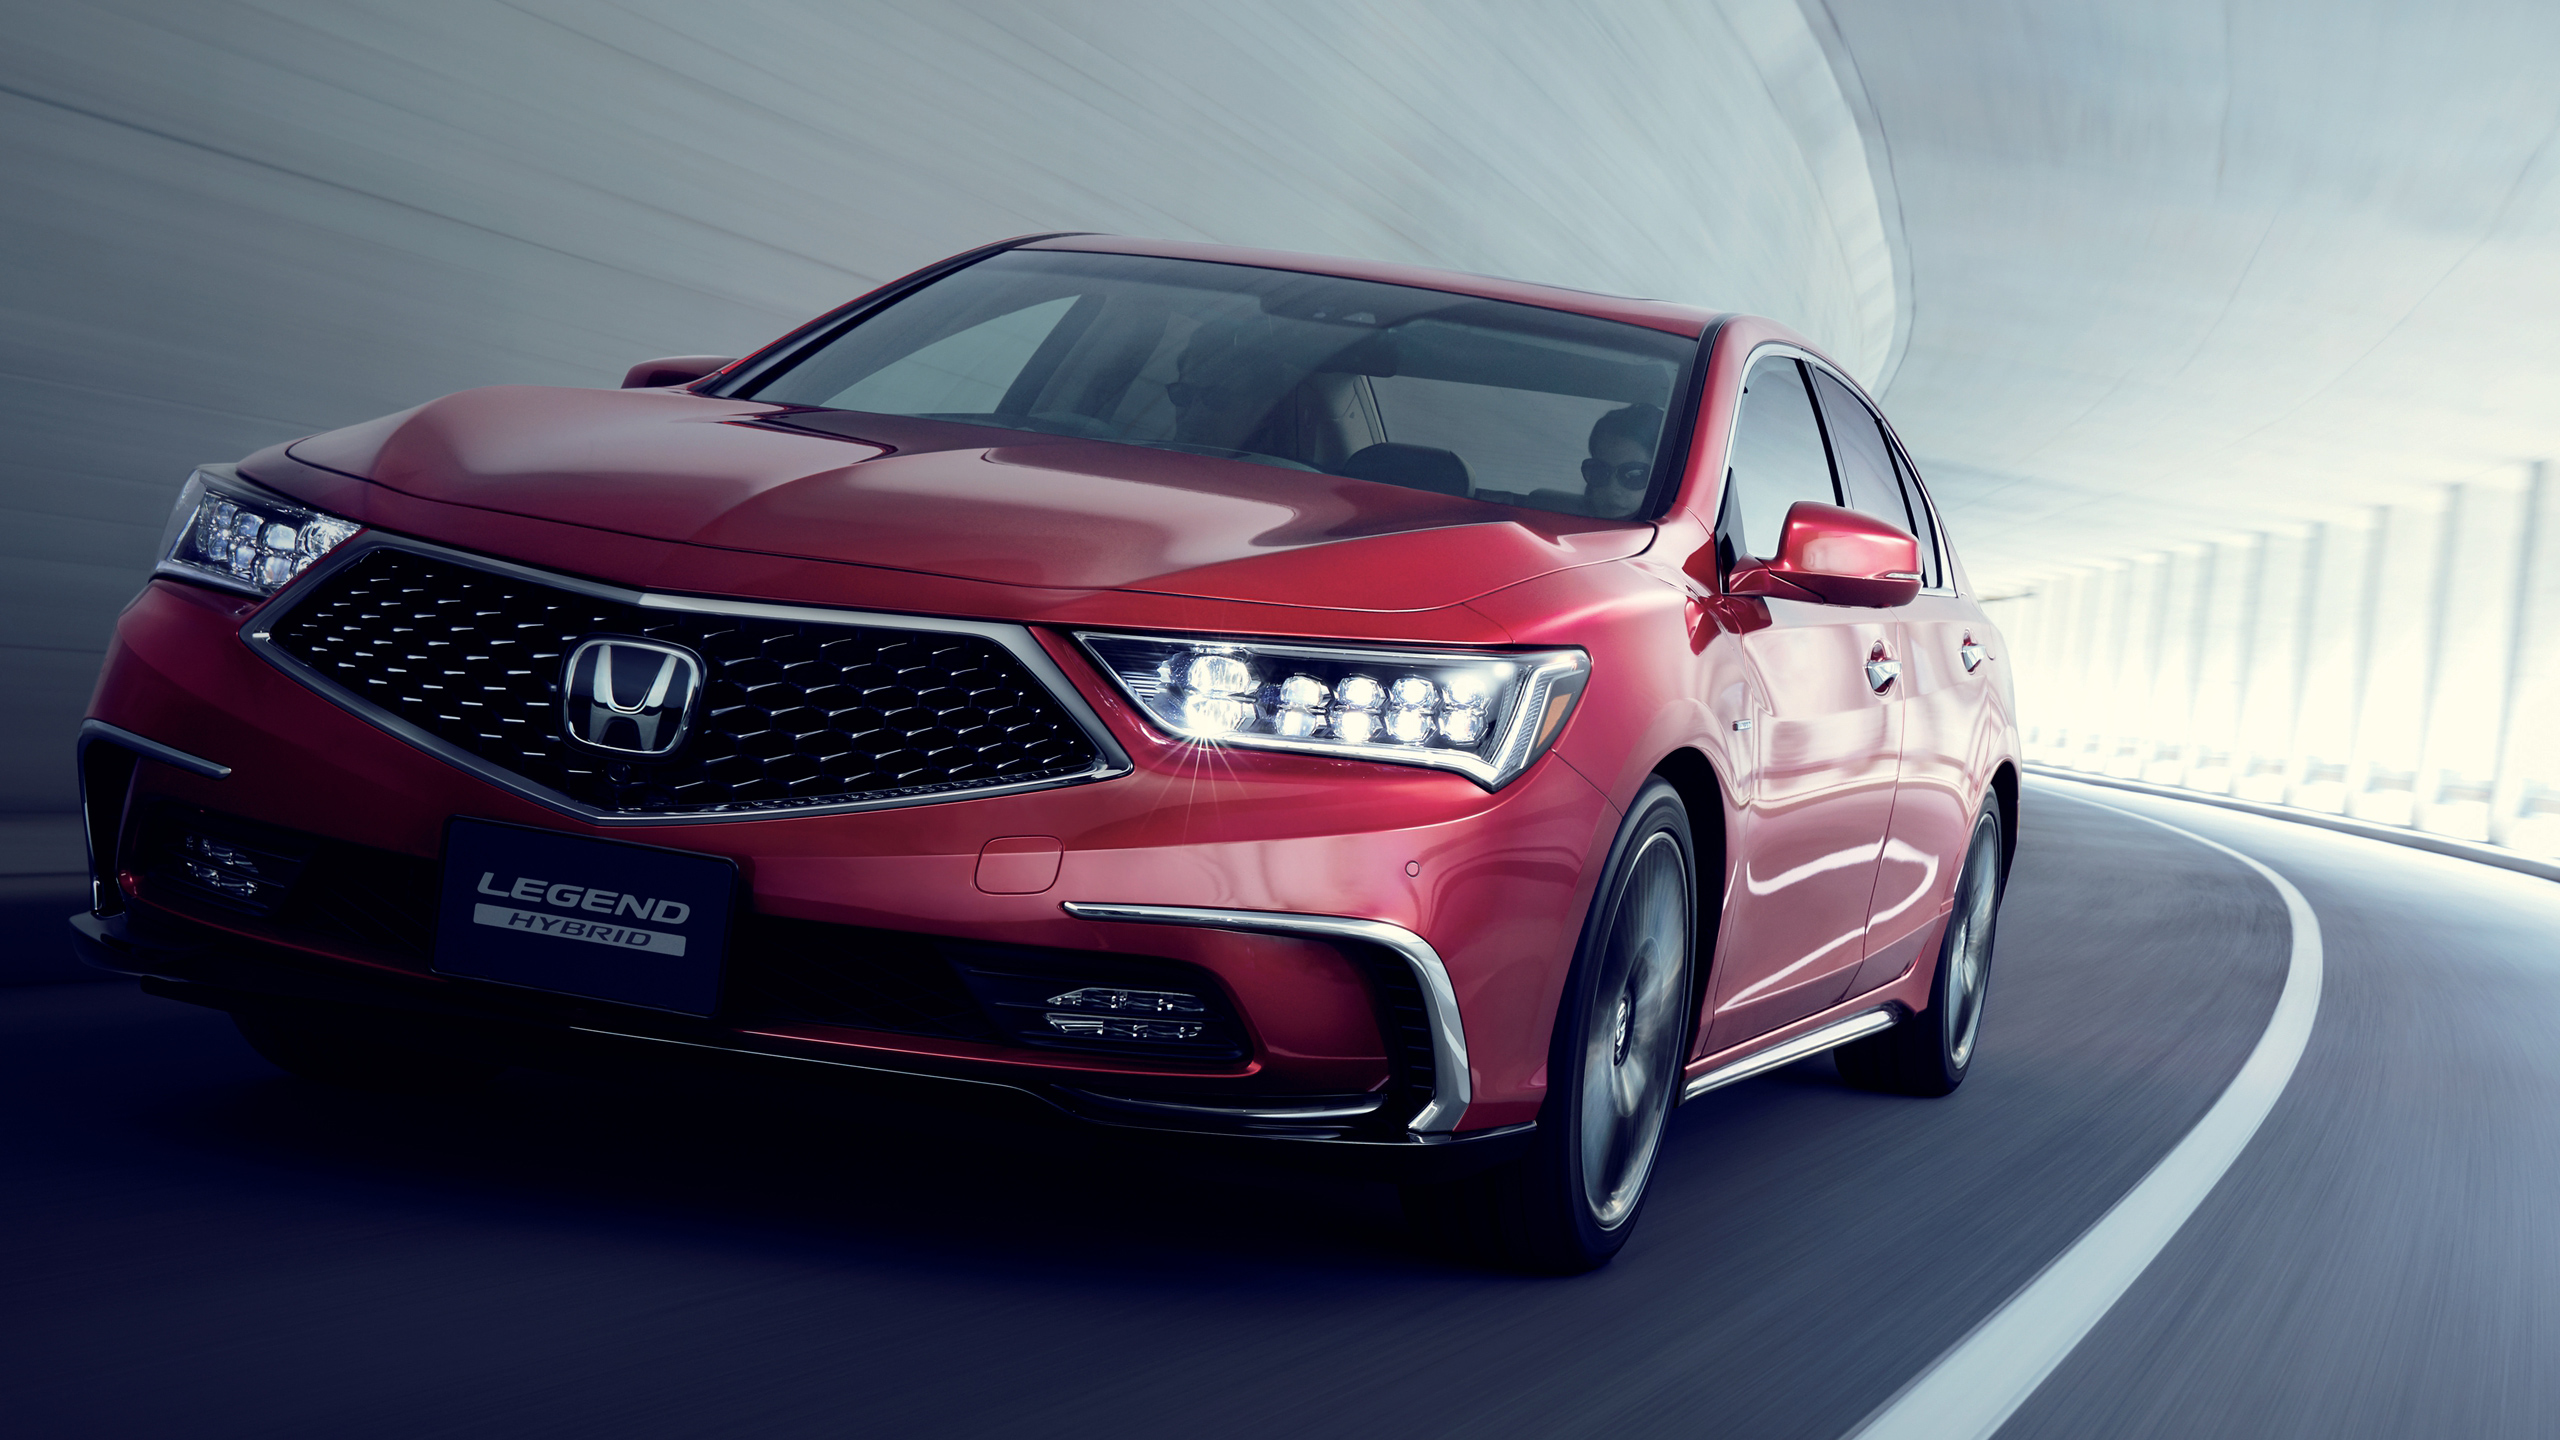 2019 honda legend hybrid wallpaper